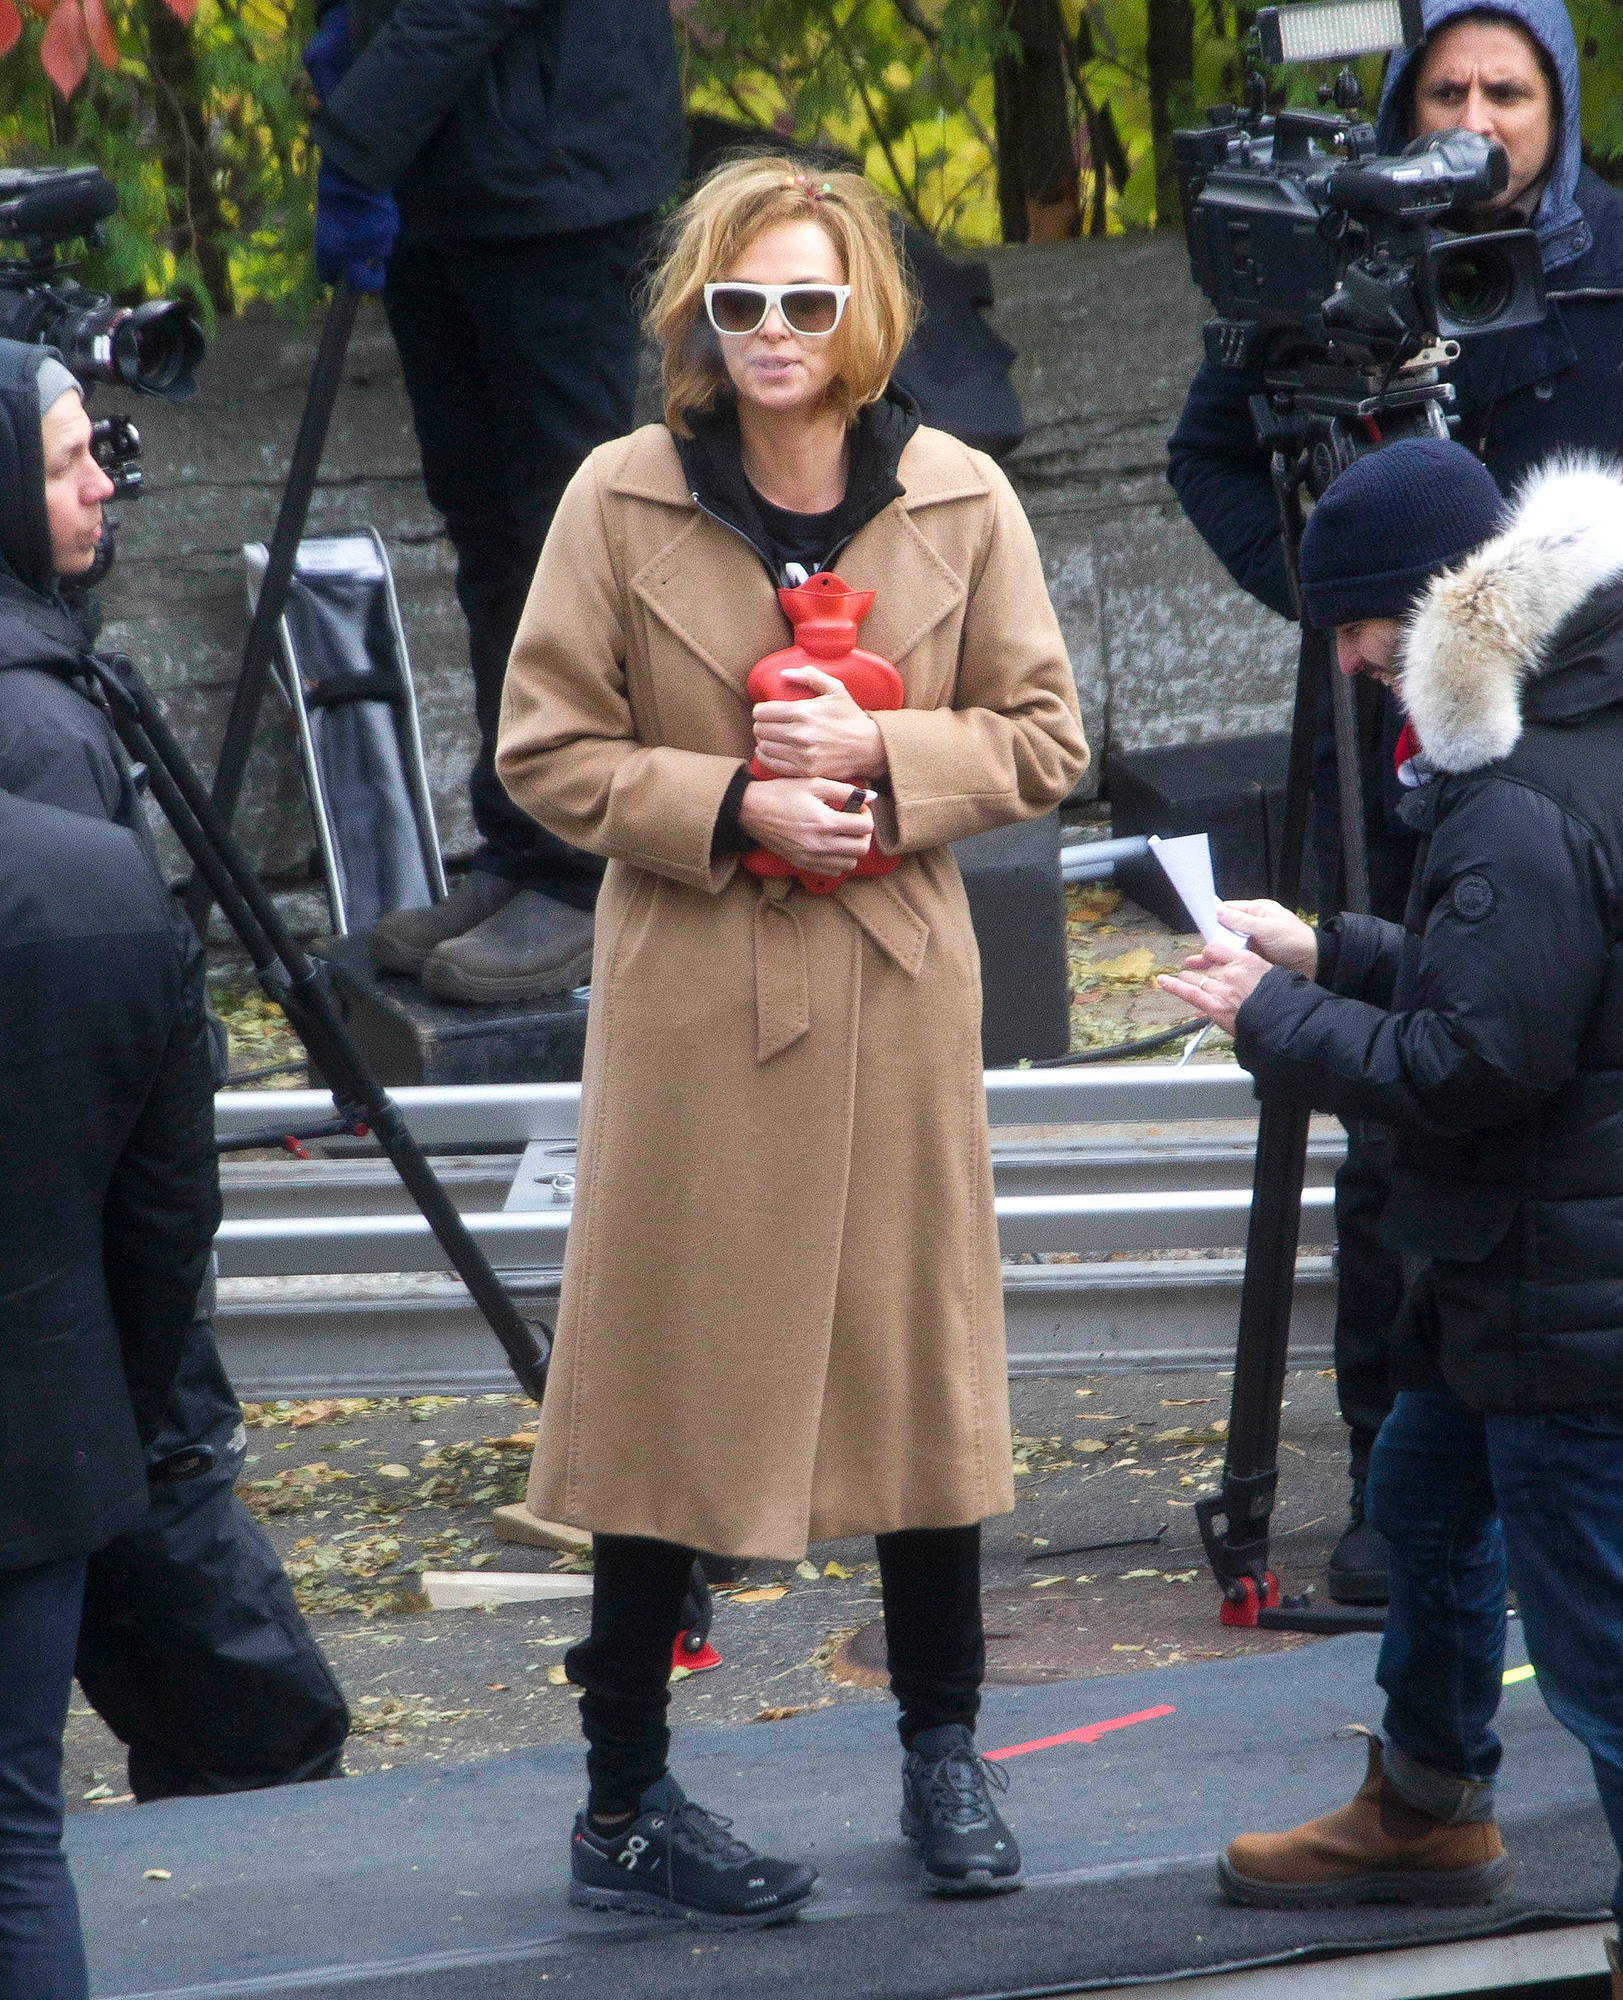 EXCLUSIVE: Charlize Theron is Spotted Smoking an Electronic Cigarette While filming in Montreal